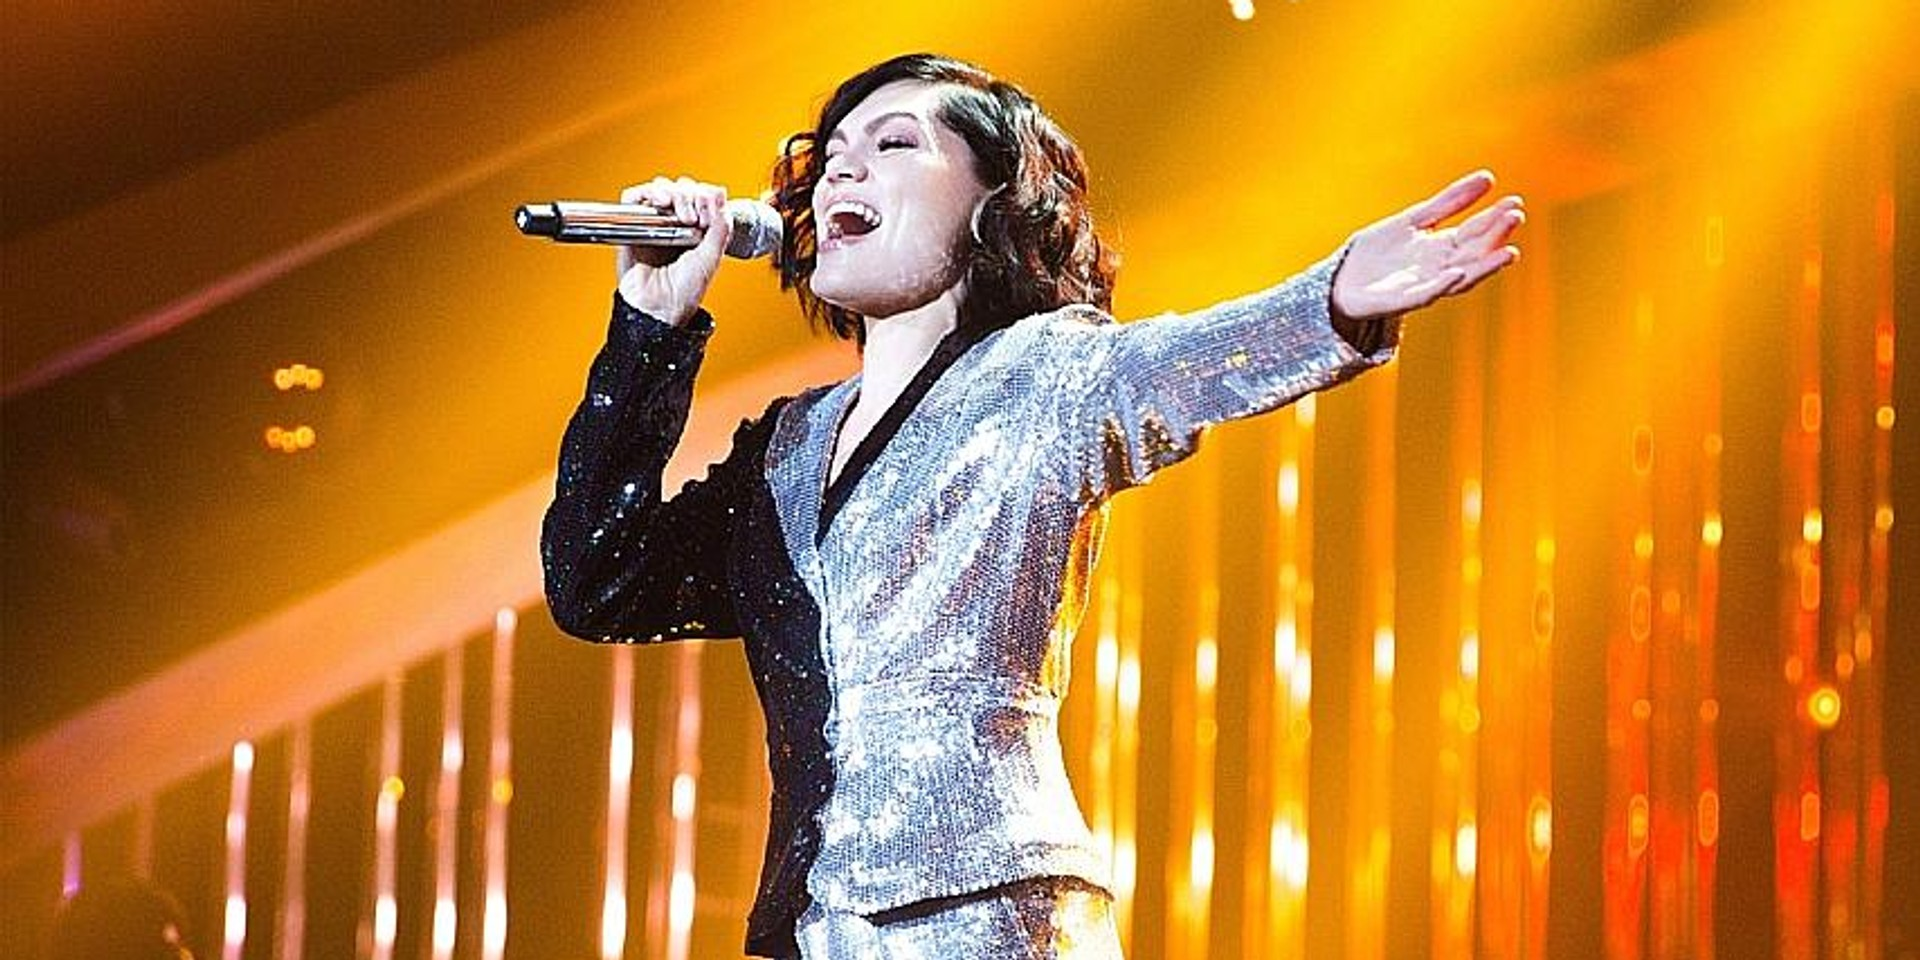 Jessie J is competing in a Chinese reality singing show... and winning